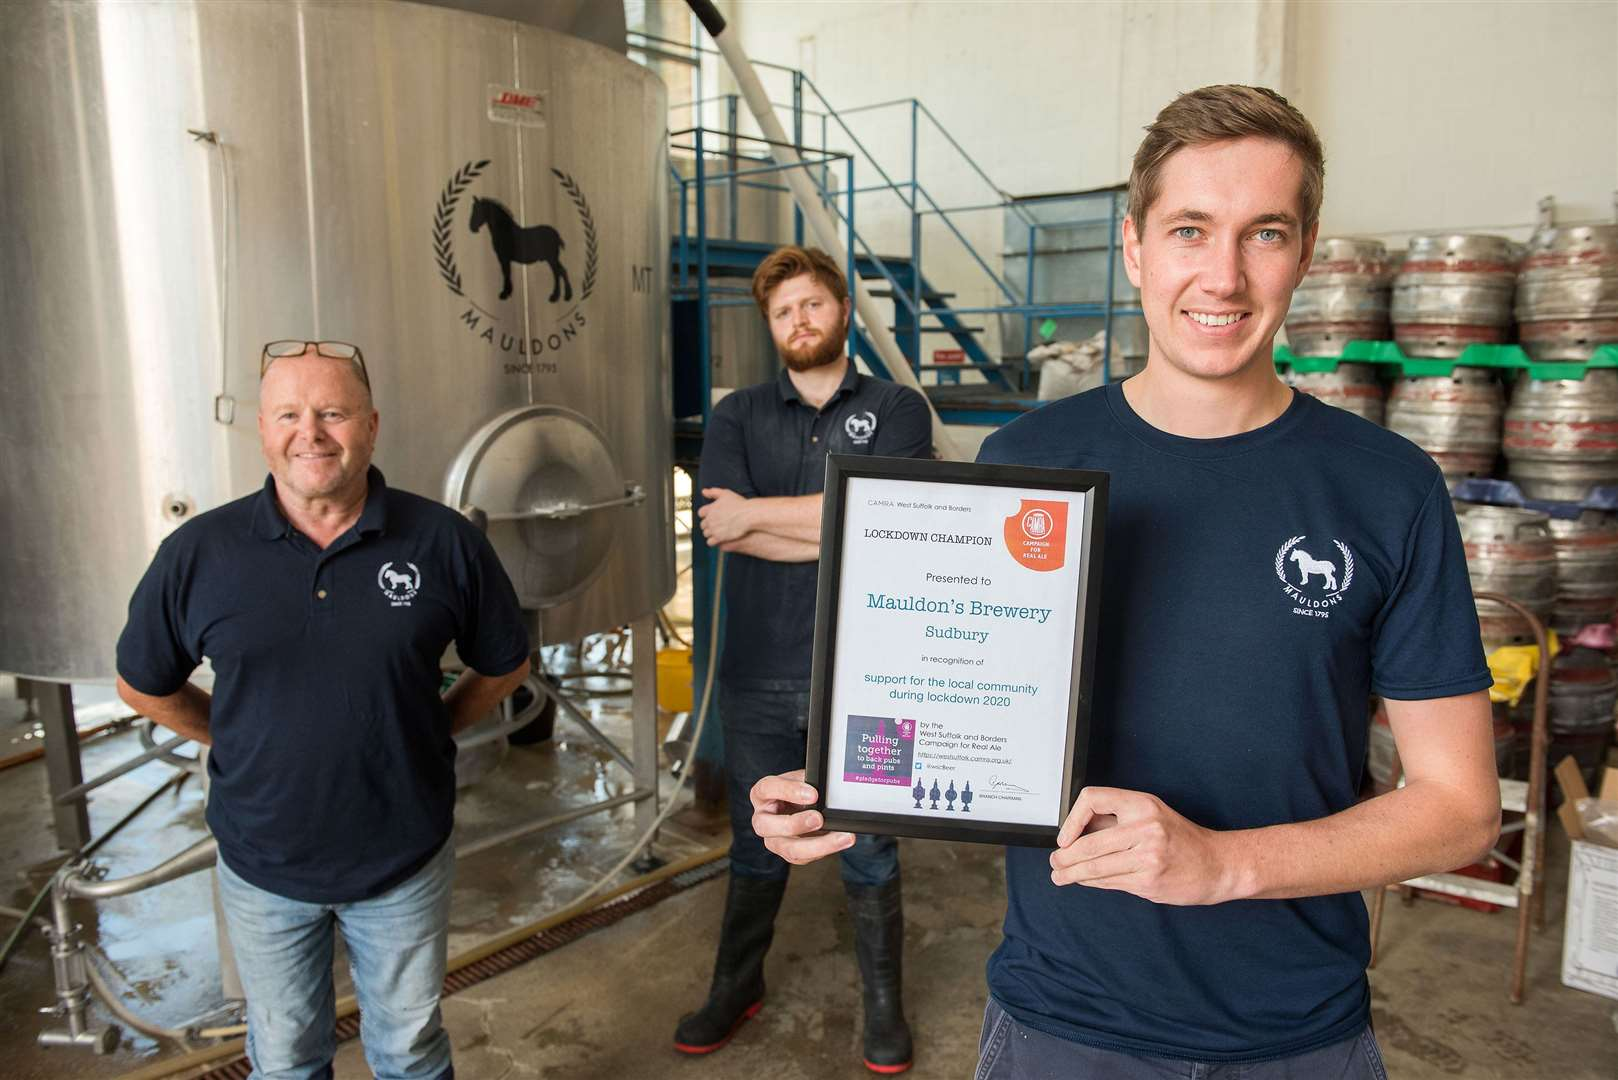 SUDBURY: Mauldons Brewery.Mauldons Brewery, 13 Church Field Road, Sudbury.Mauldons Brewery in Sudbury has received a Lockdown Champions Award from the West Suffolk and Borders Campaign for Real Ale (CAMRA), in recognition of its support for the local community during the coronavirus lockdown. Owner Charlie Buckle with Head Brewer Steve Birch and assistant Zach Isom.Picture by Mark Westley. (39440214)